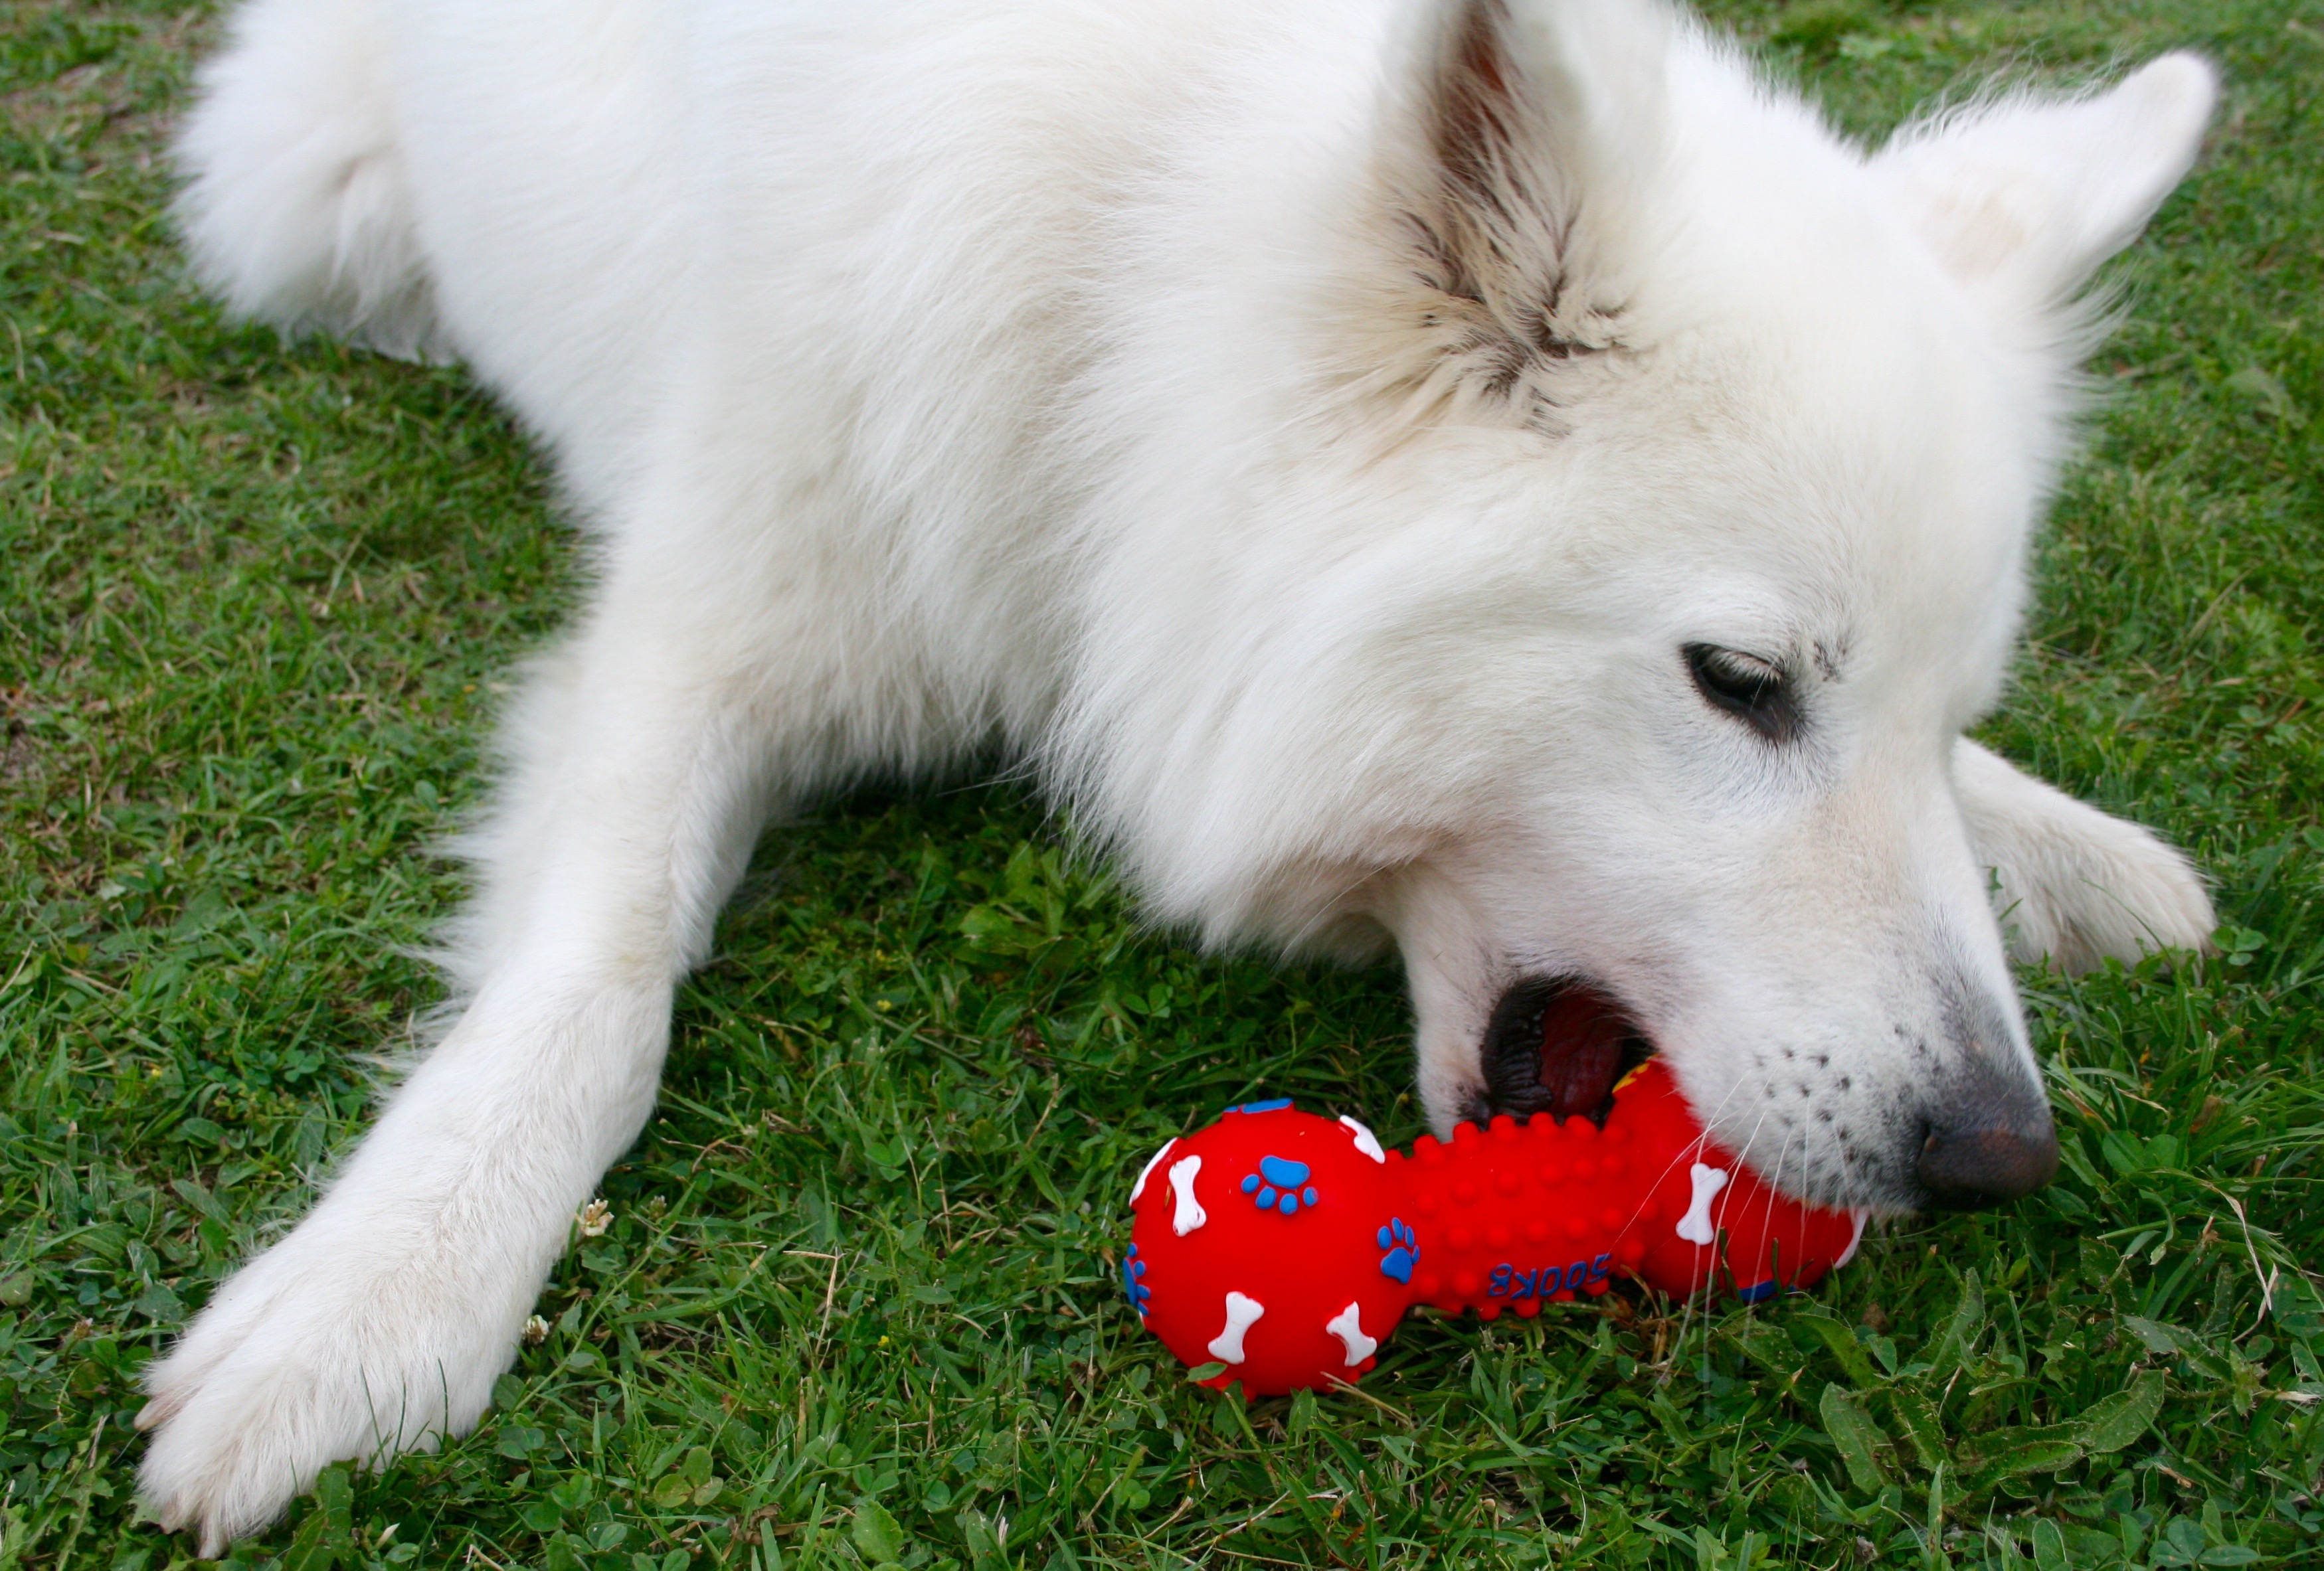 Fluffy white dog chews on a red squeak toy in the grass